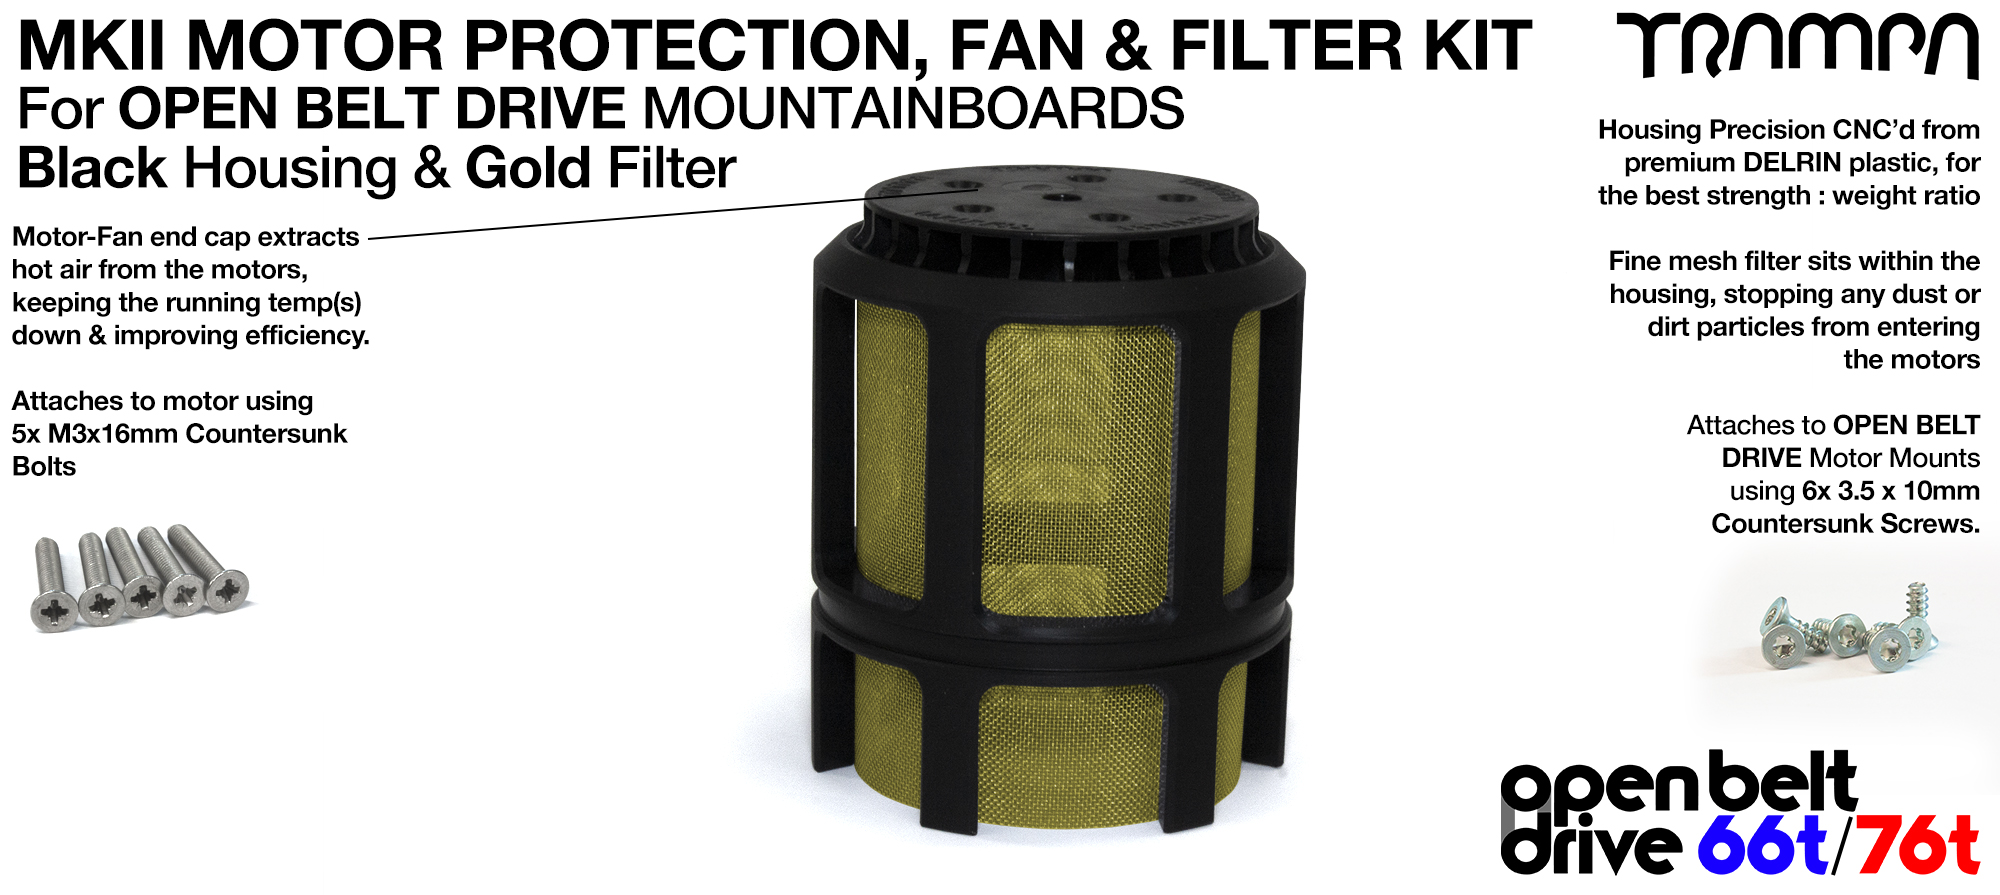 1x OBD MKII Motor protection Sleeve with GOLD Filter